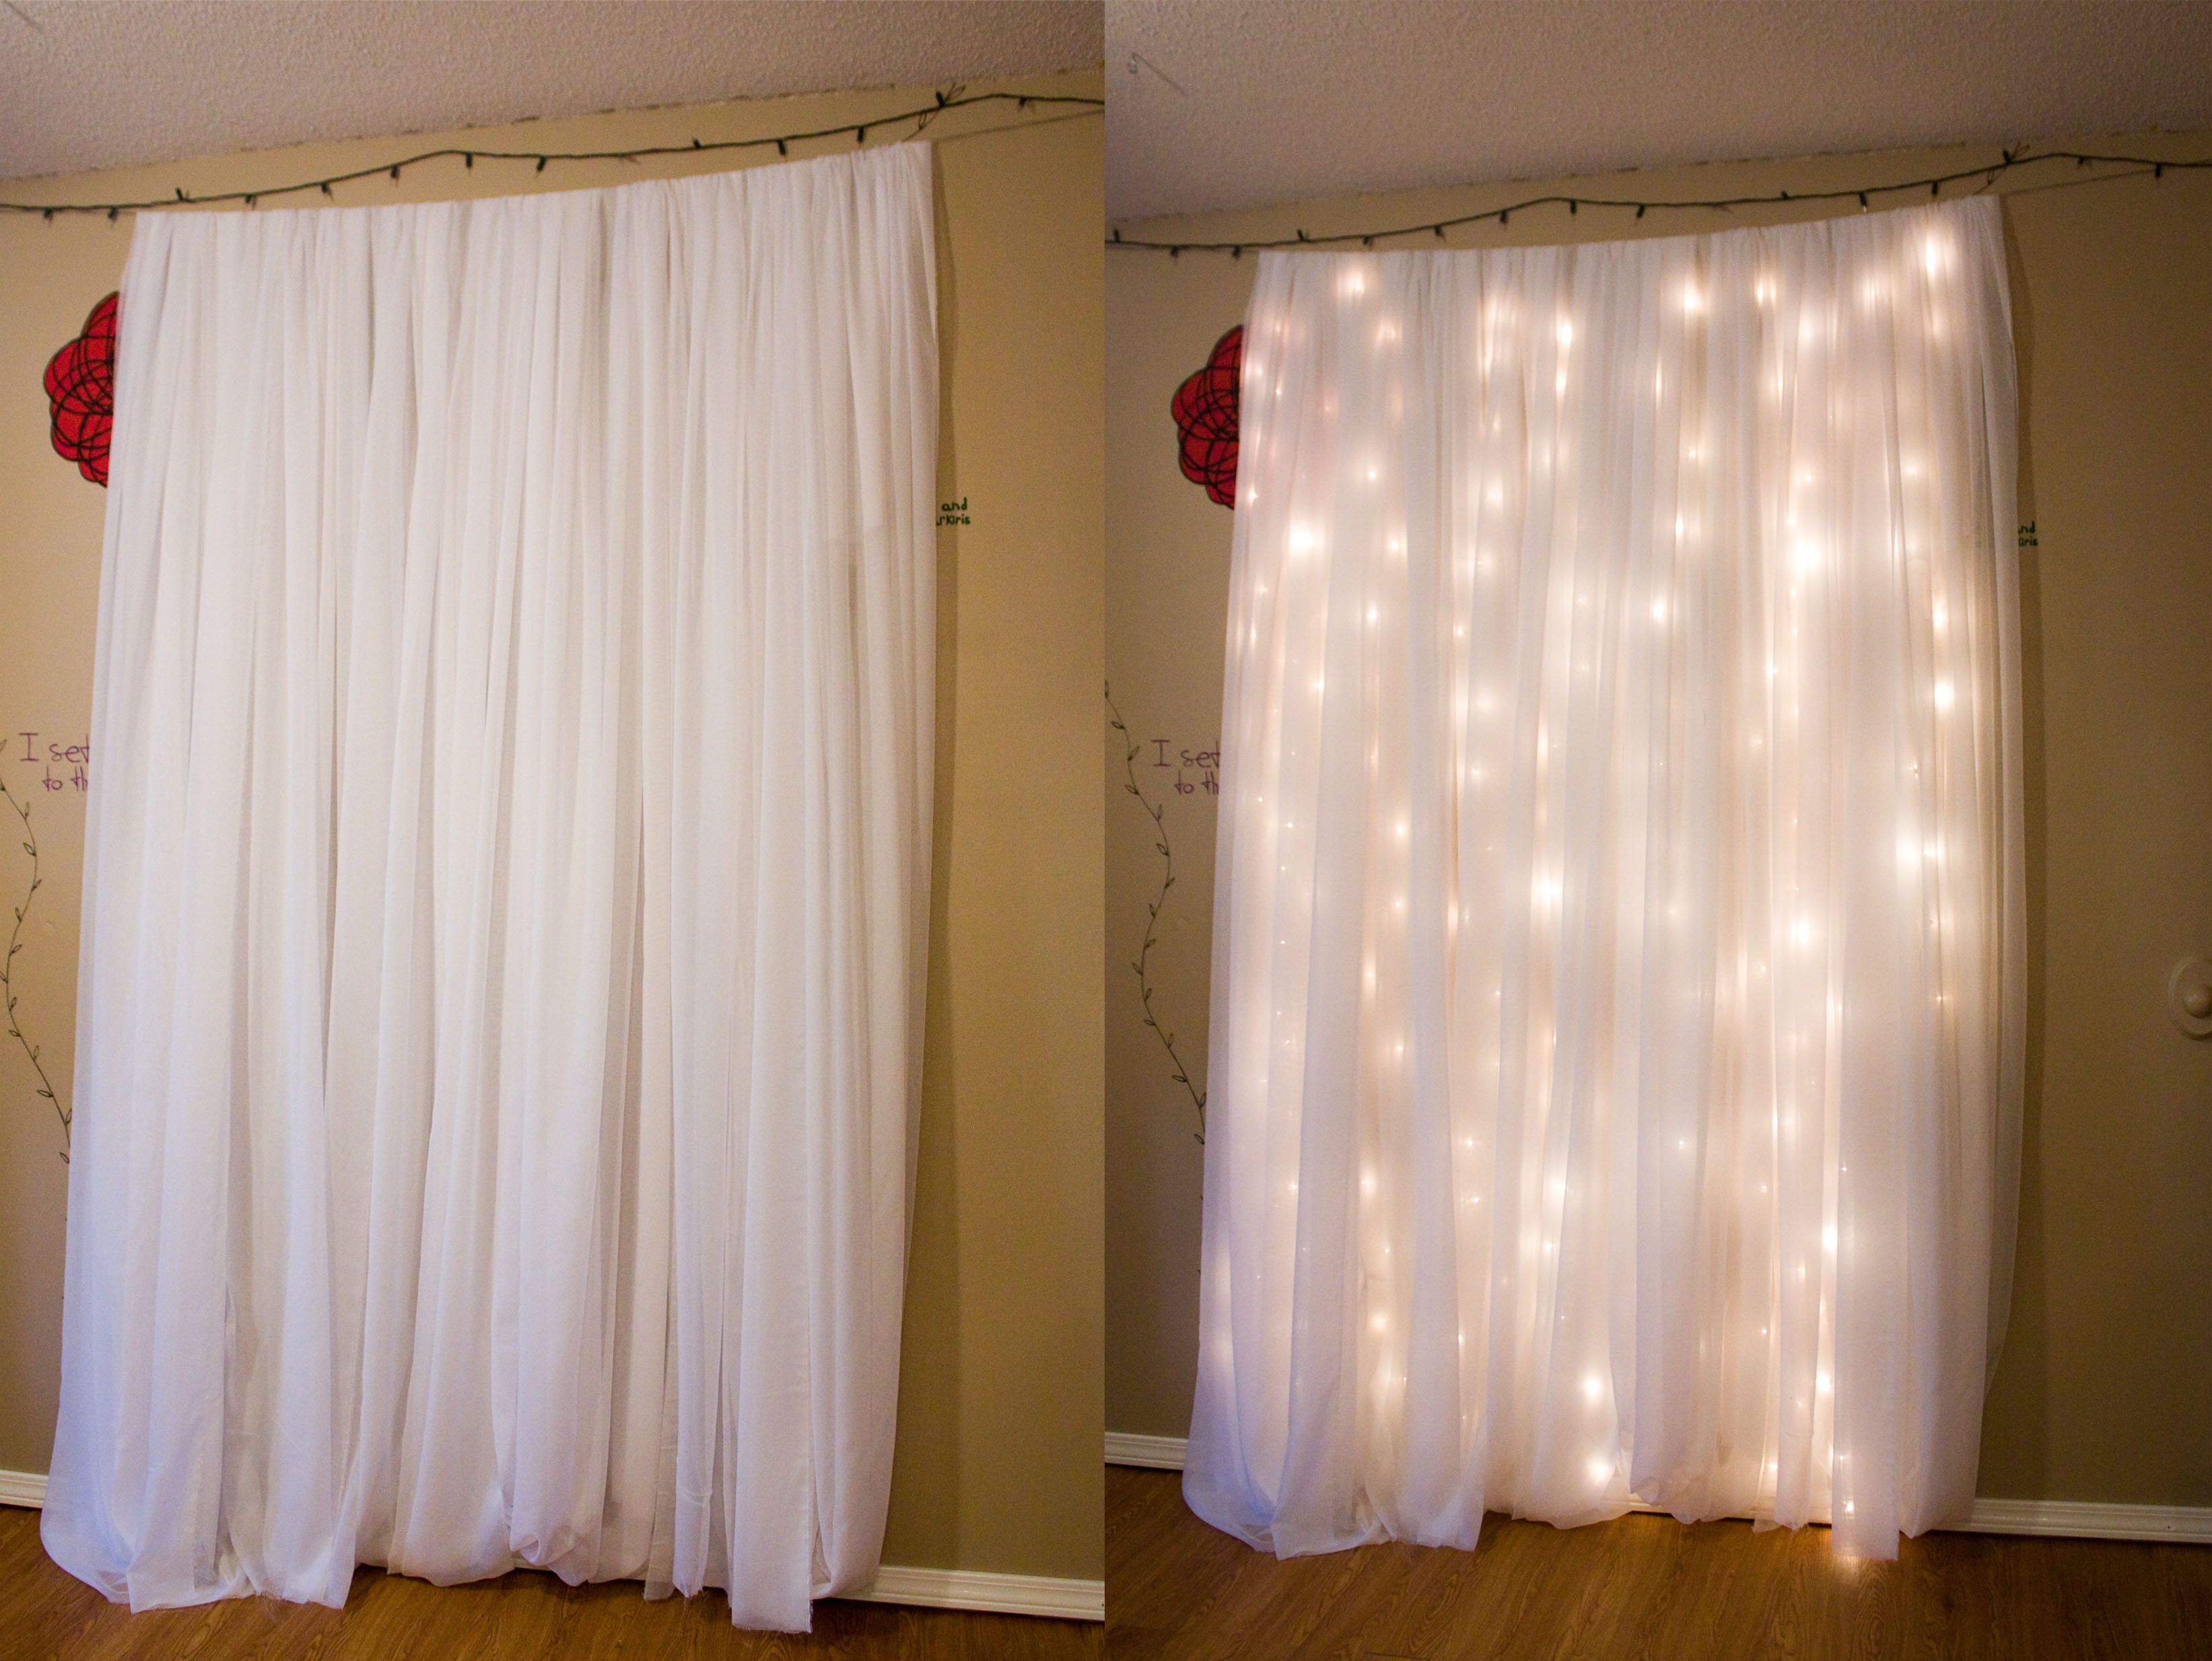 Christmas Picture Backdrop Ideas Xmas Holiday Photo Backdrop For Diy Photo Booth Pinteres